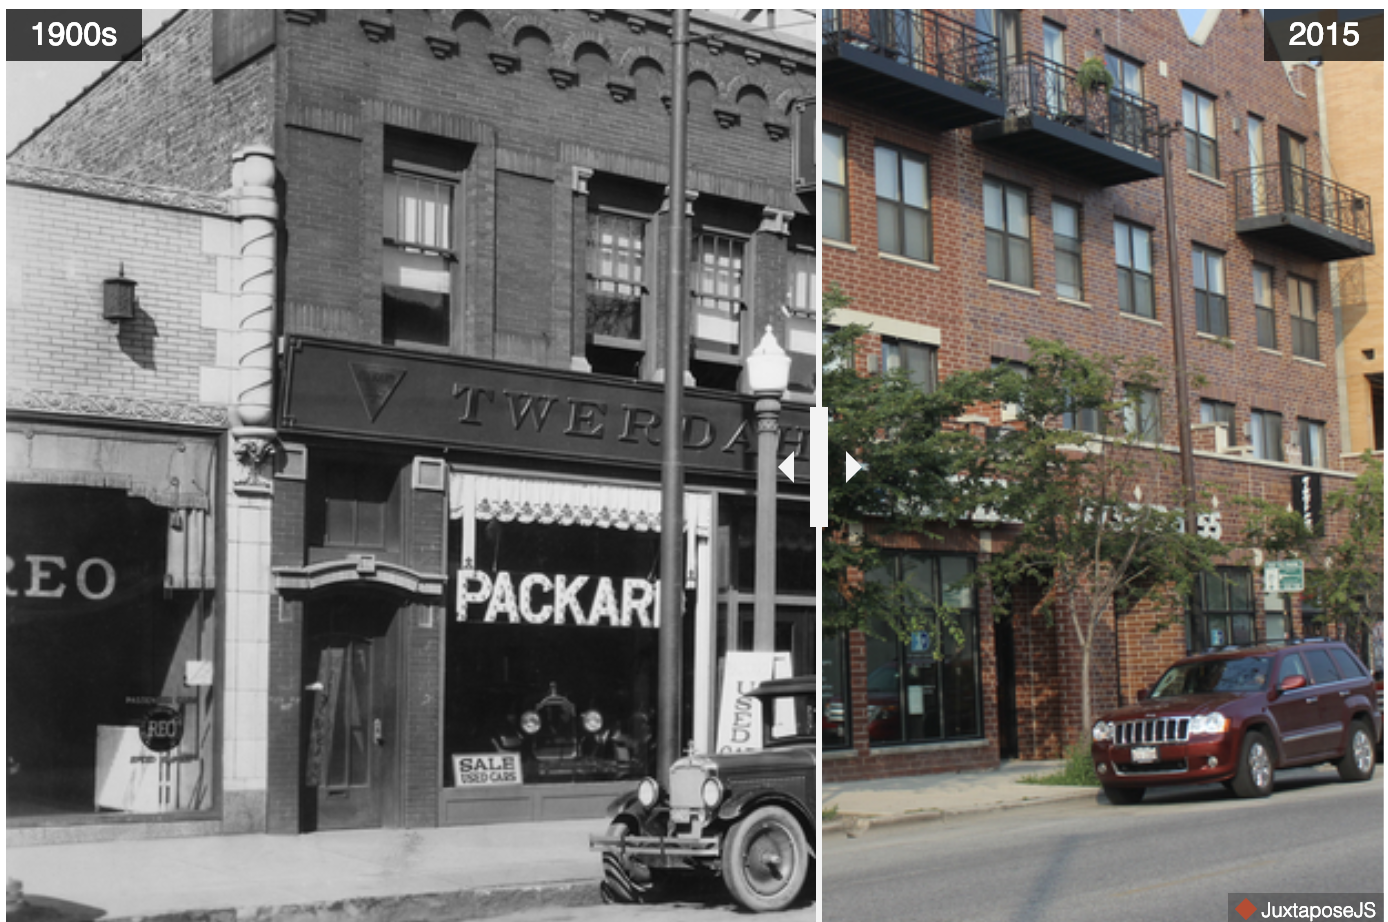 This is a before and after in a neighborhood in Chicago. More here:  https://www.dnainfo.com/chicago/20150803/logan-square/logan-squares-milwaukee-avenue-then-now-photos/